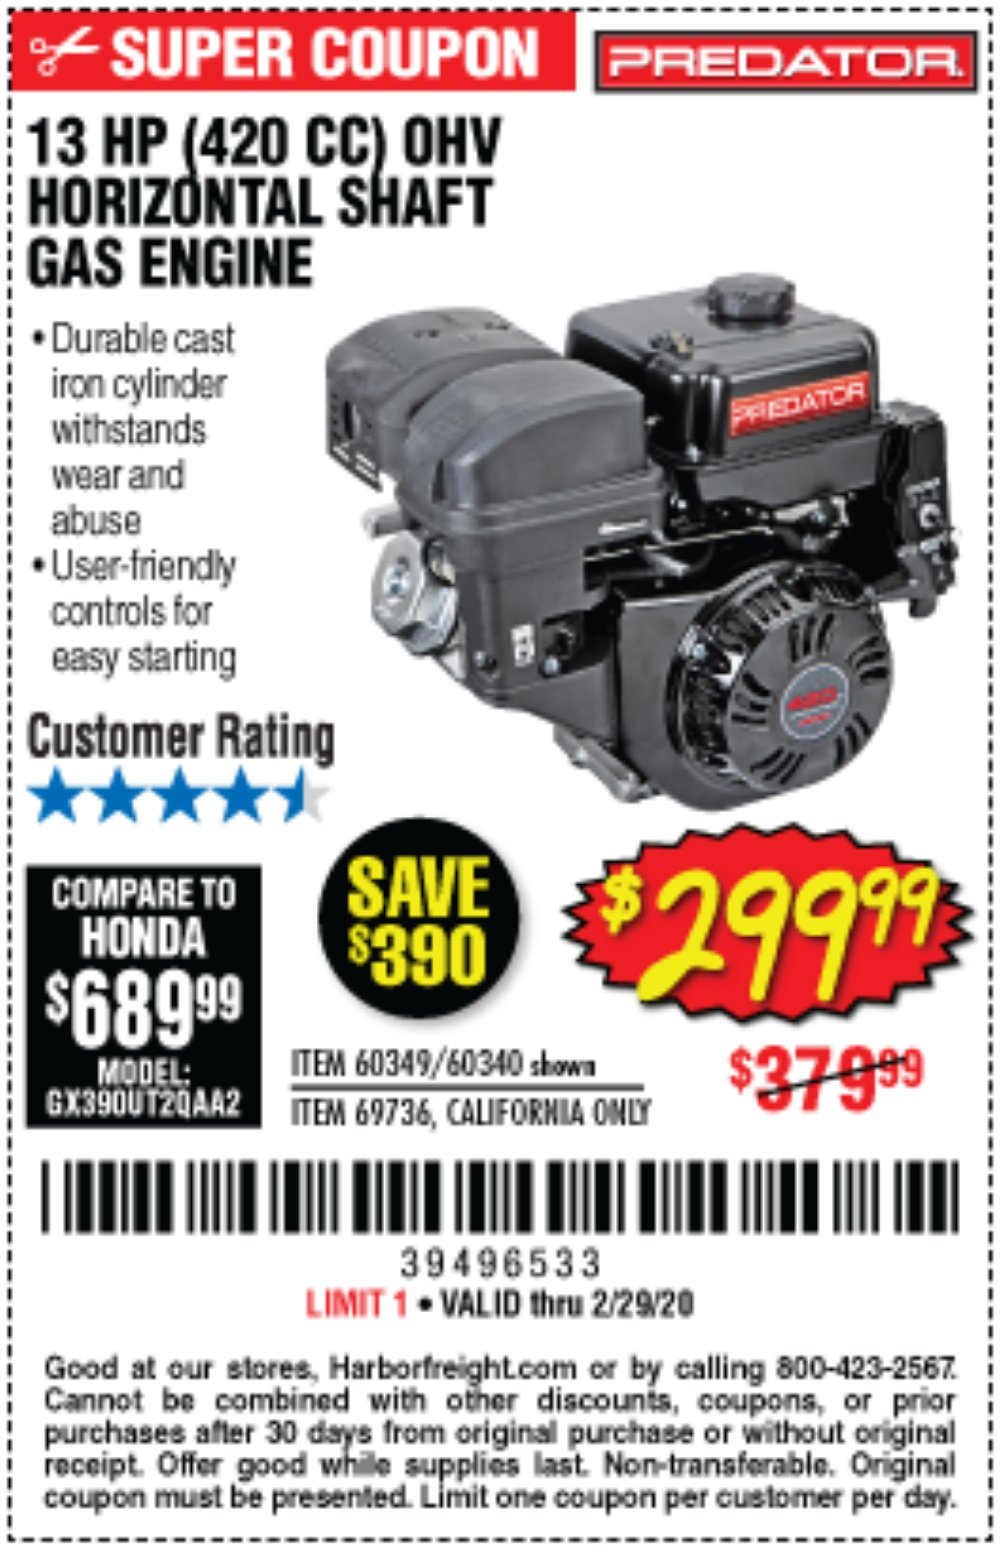 Harbor Freight Coupon, HF Coupons - 13 Hp (420 Cc) Ohv Horizontal Shaft Gas Engines